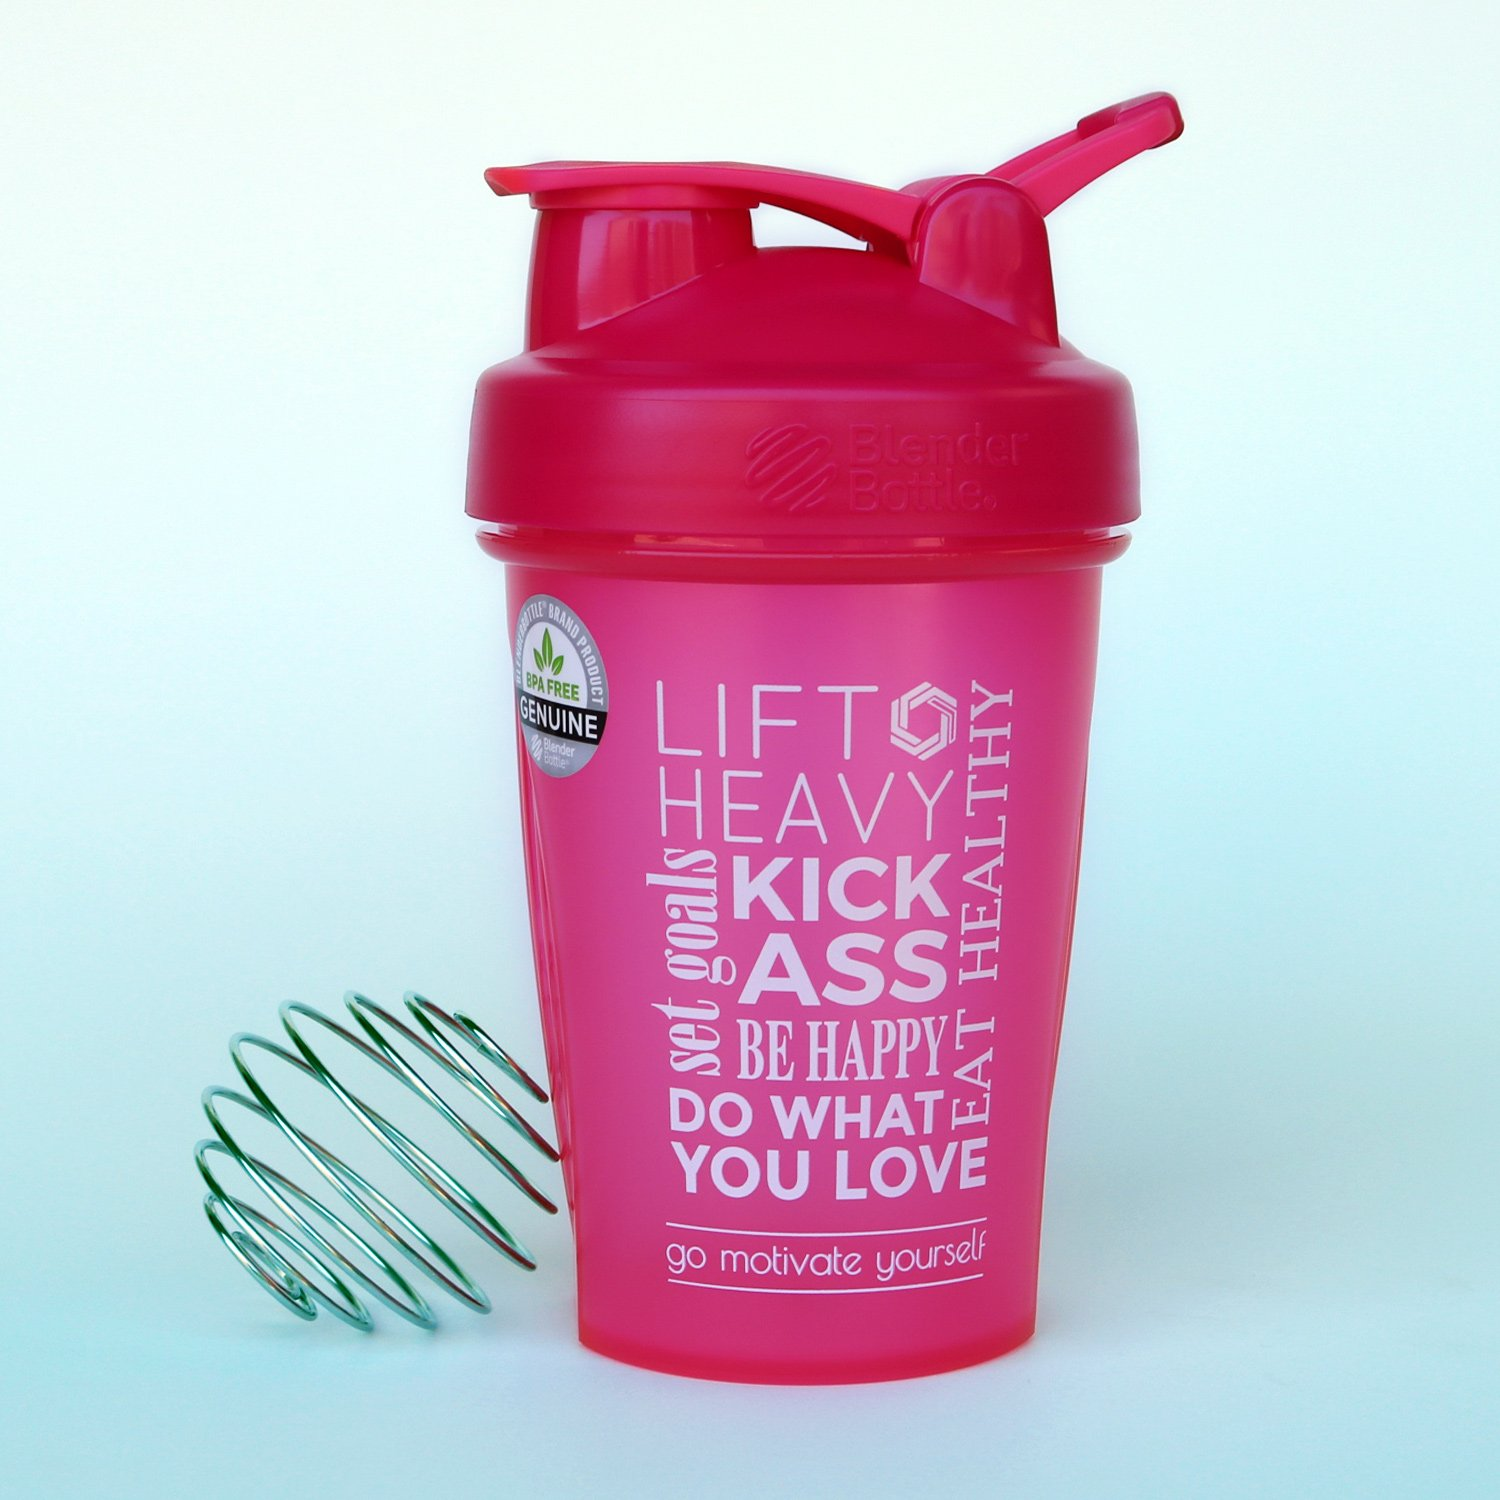 GOMOYO Do What You Love Word Mesh on BlenderBottle brand Classic shaker cup, 20oz Capacity, Includes BlenderBall whisk (Pink - 20oz) by GOMOYO (Image #2)